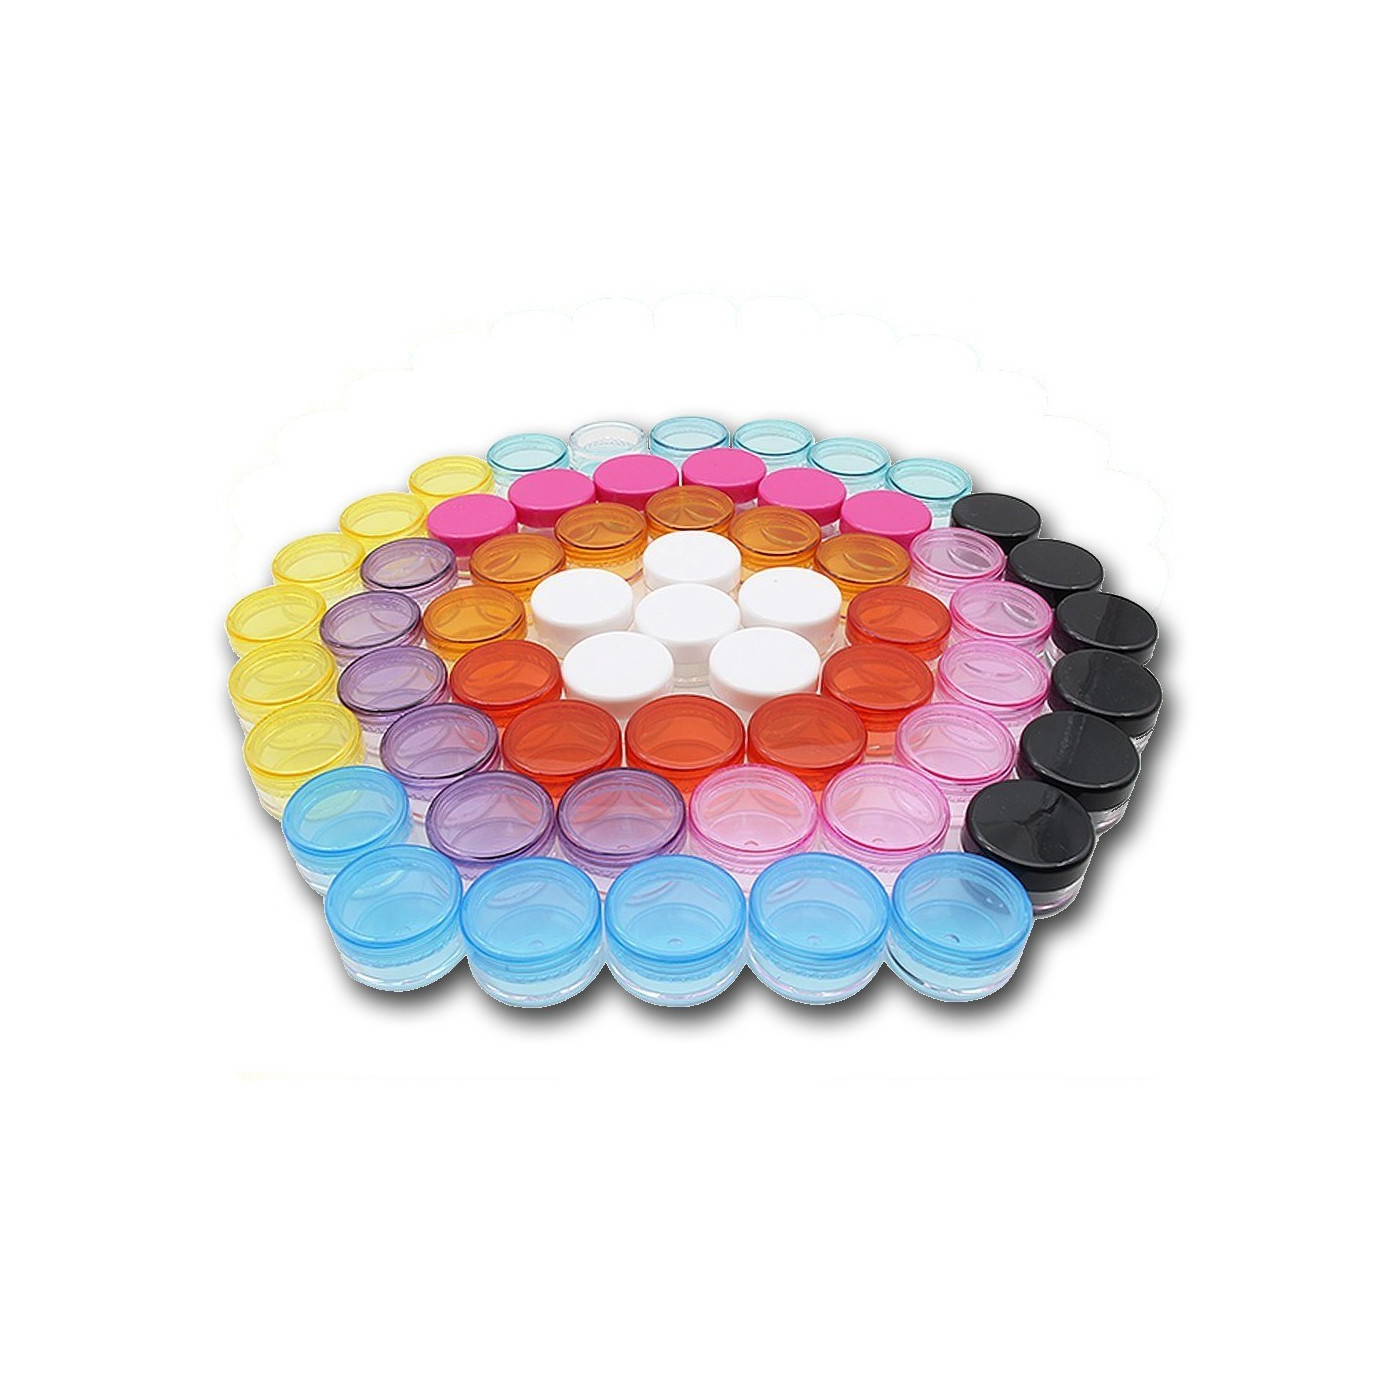 Set of 80 plastic jars (5 ml) with colored screw caps